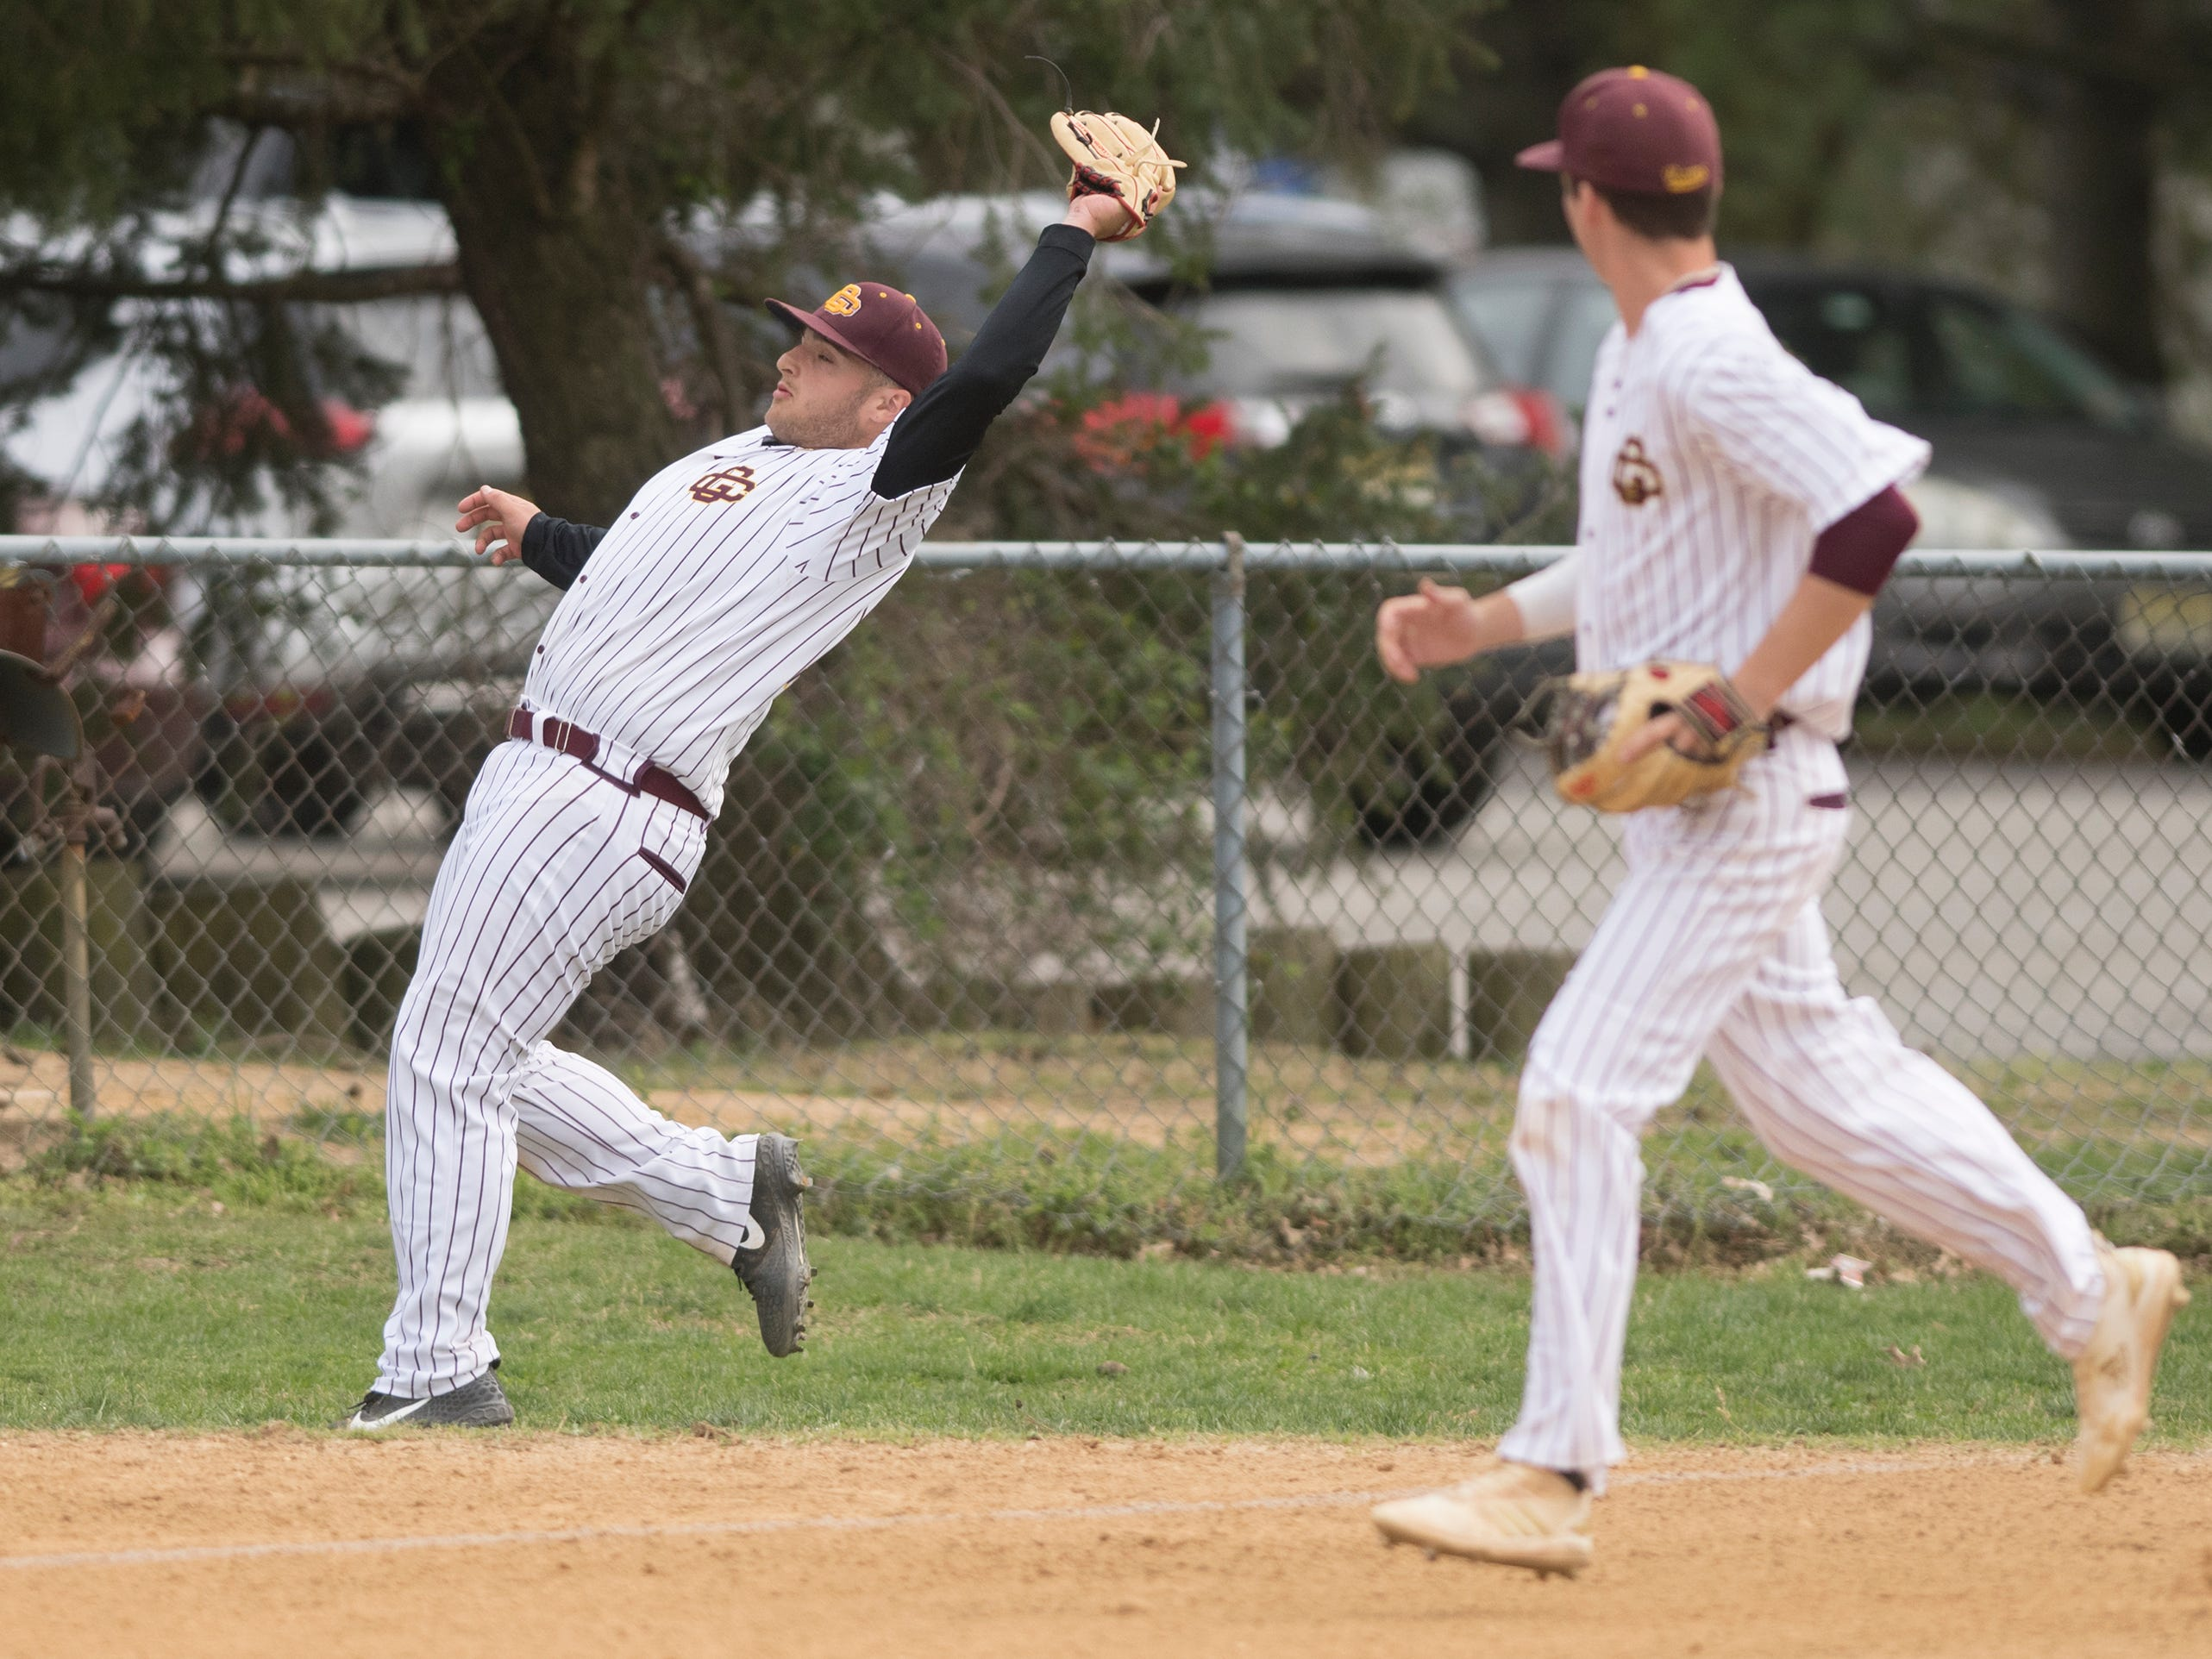 Gloucester Catholic's Lillo Paxia catches a foul ball during Gloucester Catholic's 13- 0 win over Pennsville at Joe Barth Field in Brooklawn on Wednesday, April 17, 2019.